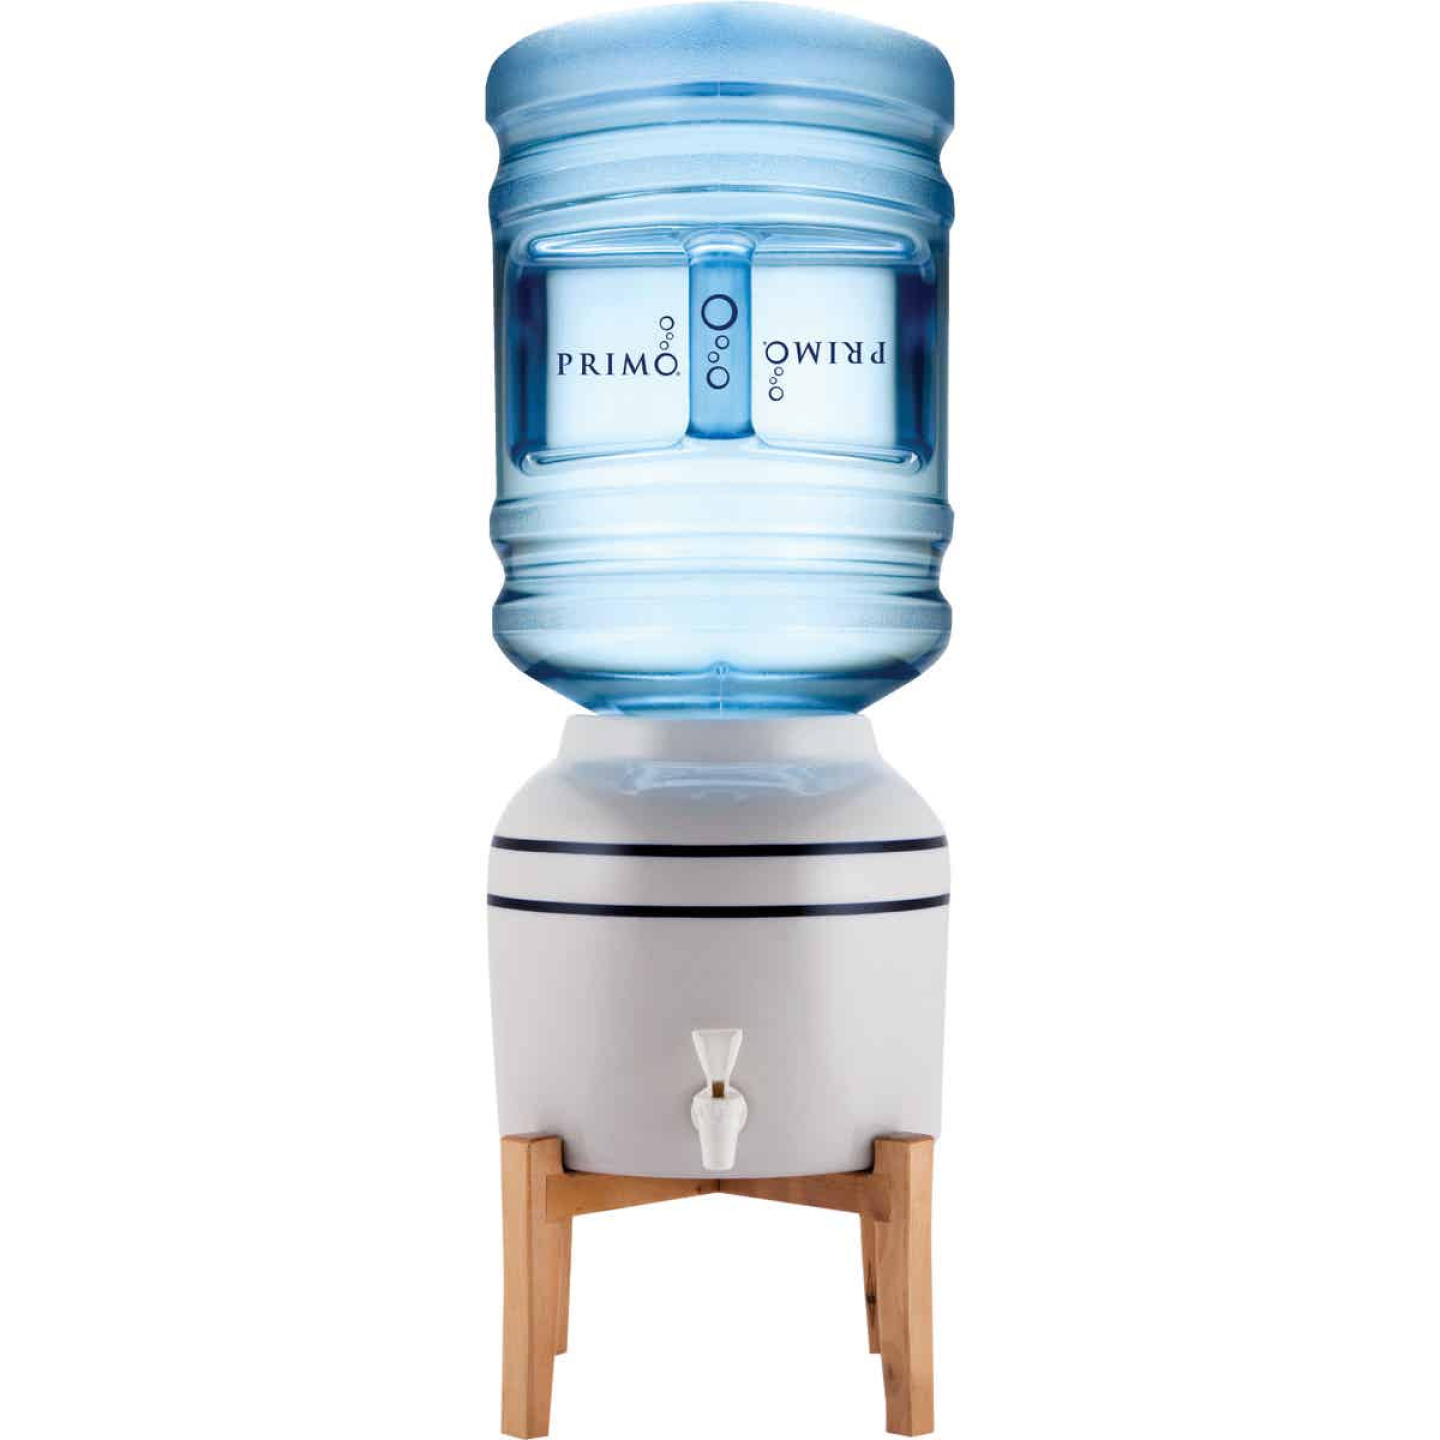 Primo Ceramic Bottled Water Cooler Dispenser Image 1